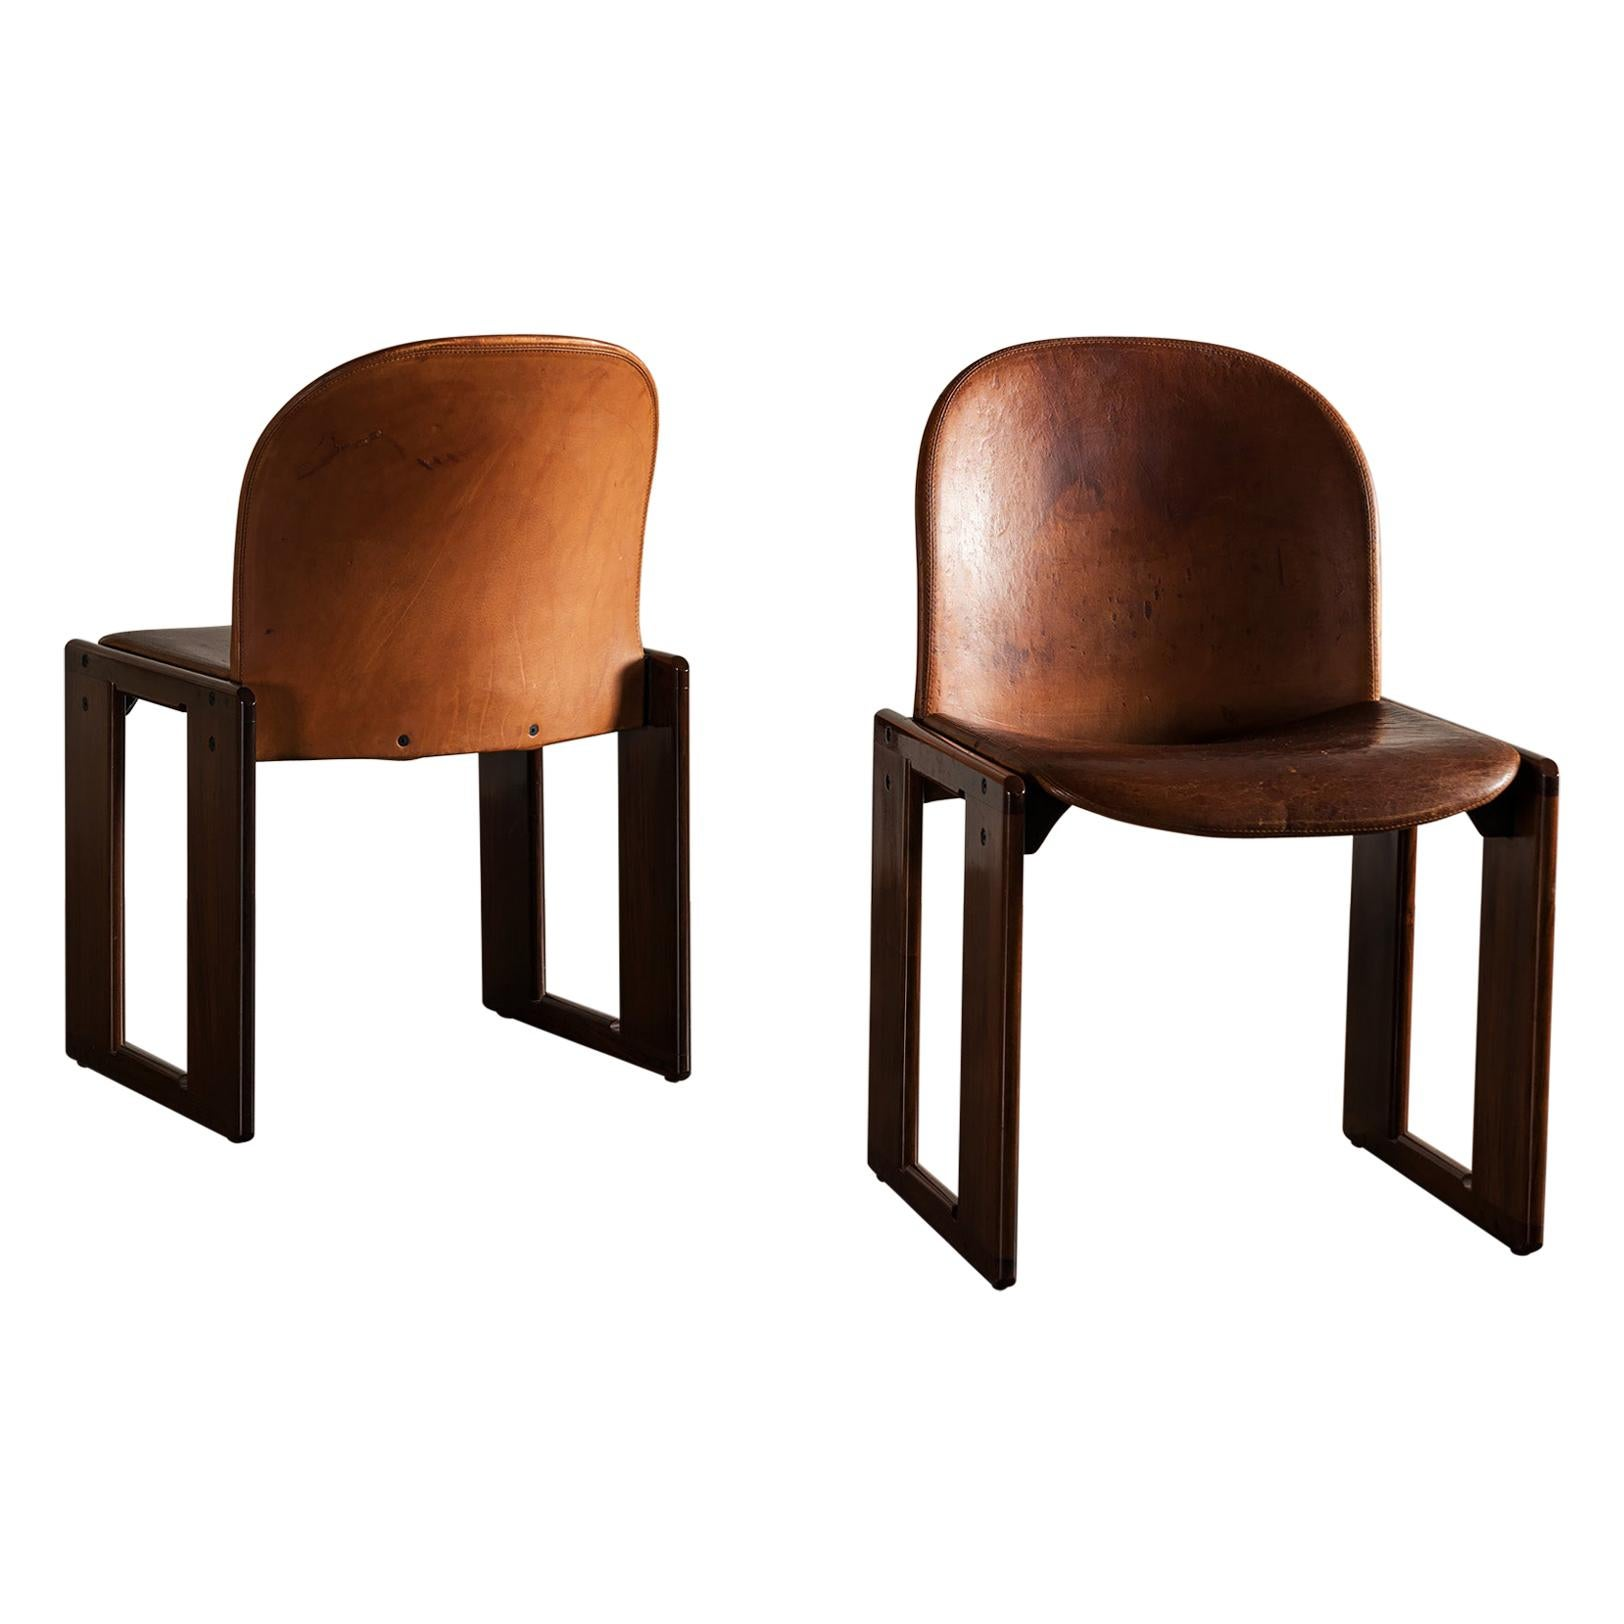 Pair of Dialogo Chairs by Afra and Tobia Scarpa for B&B Italia, Italy, 1970s